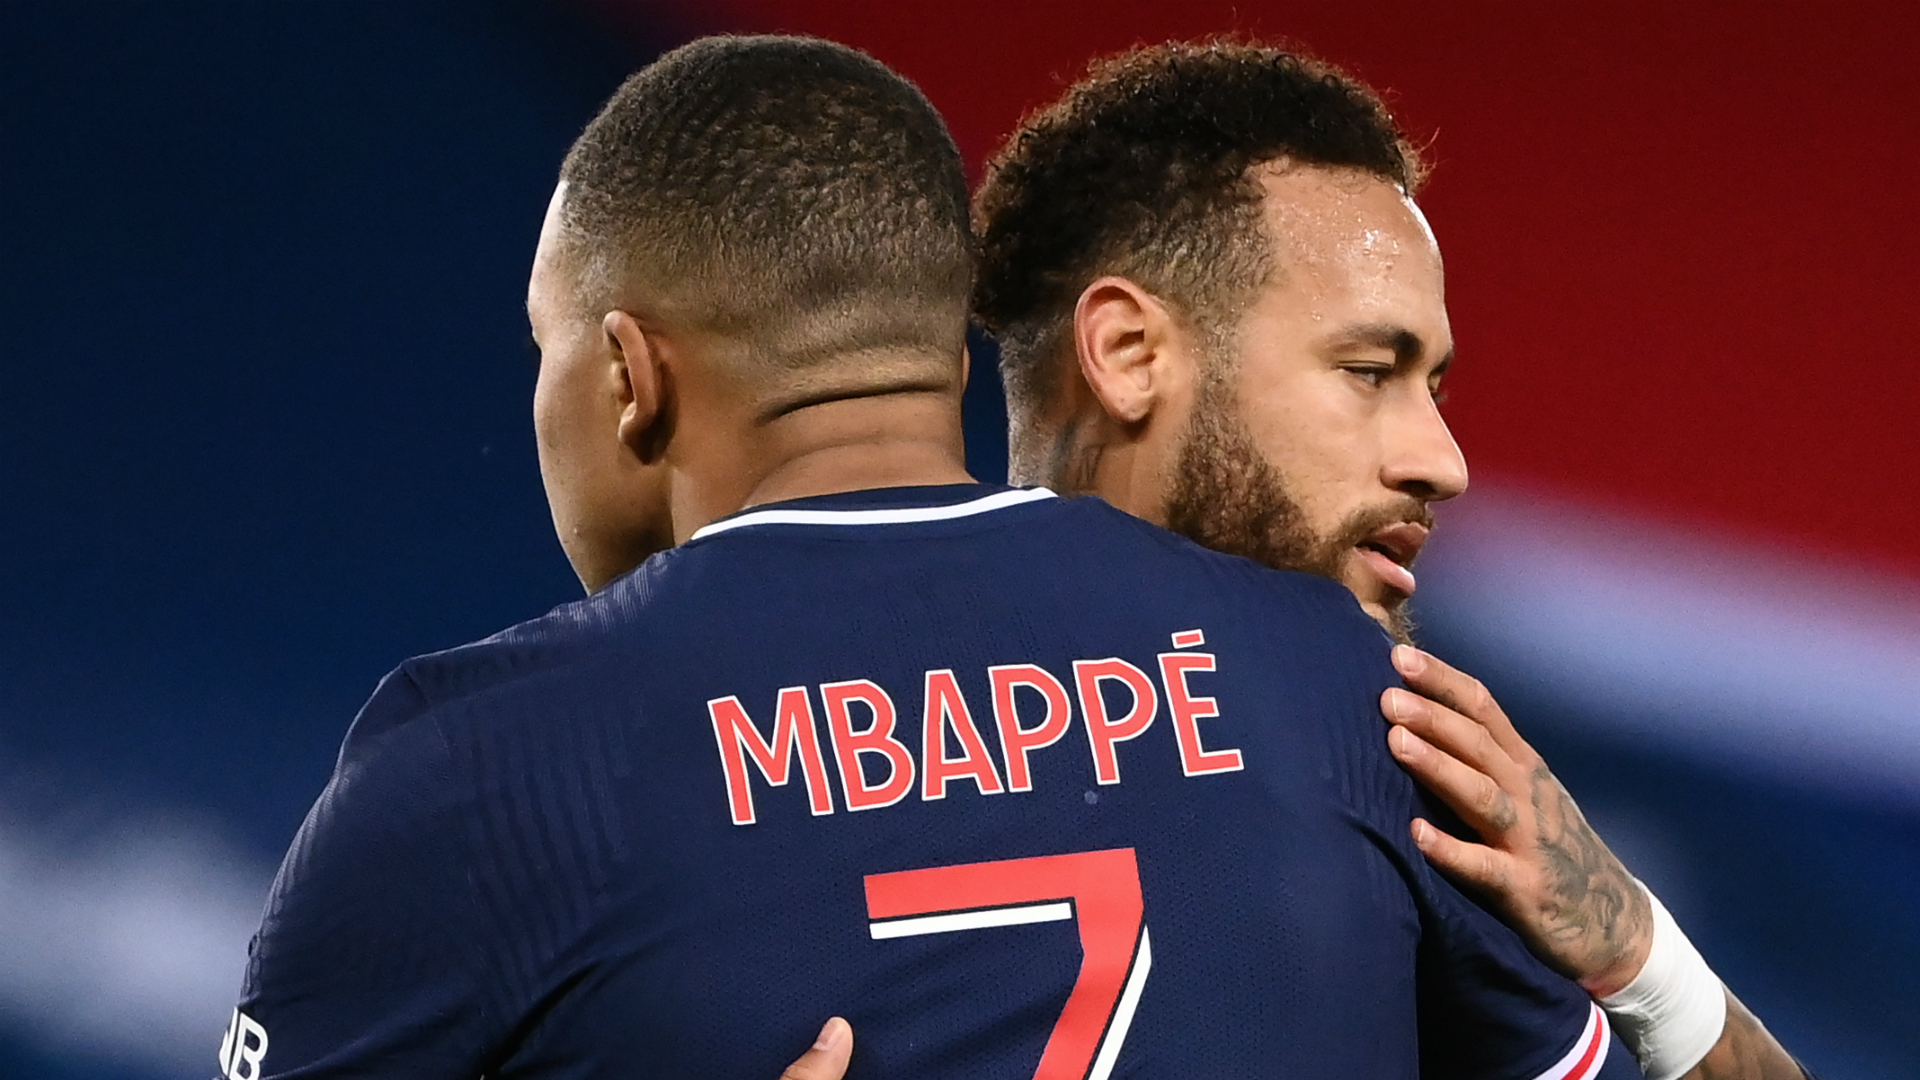 Mbappe, Neymar back in contention but Tuchel aiming to keep PSG fresh for Leipzig